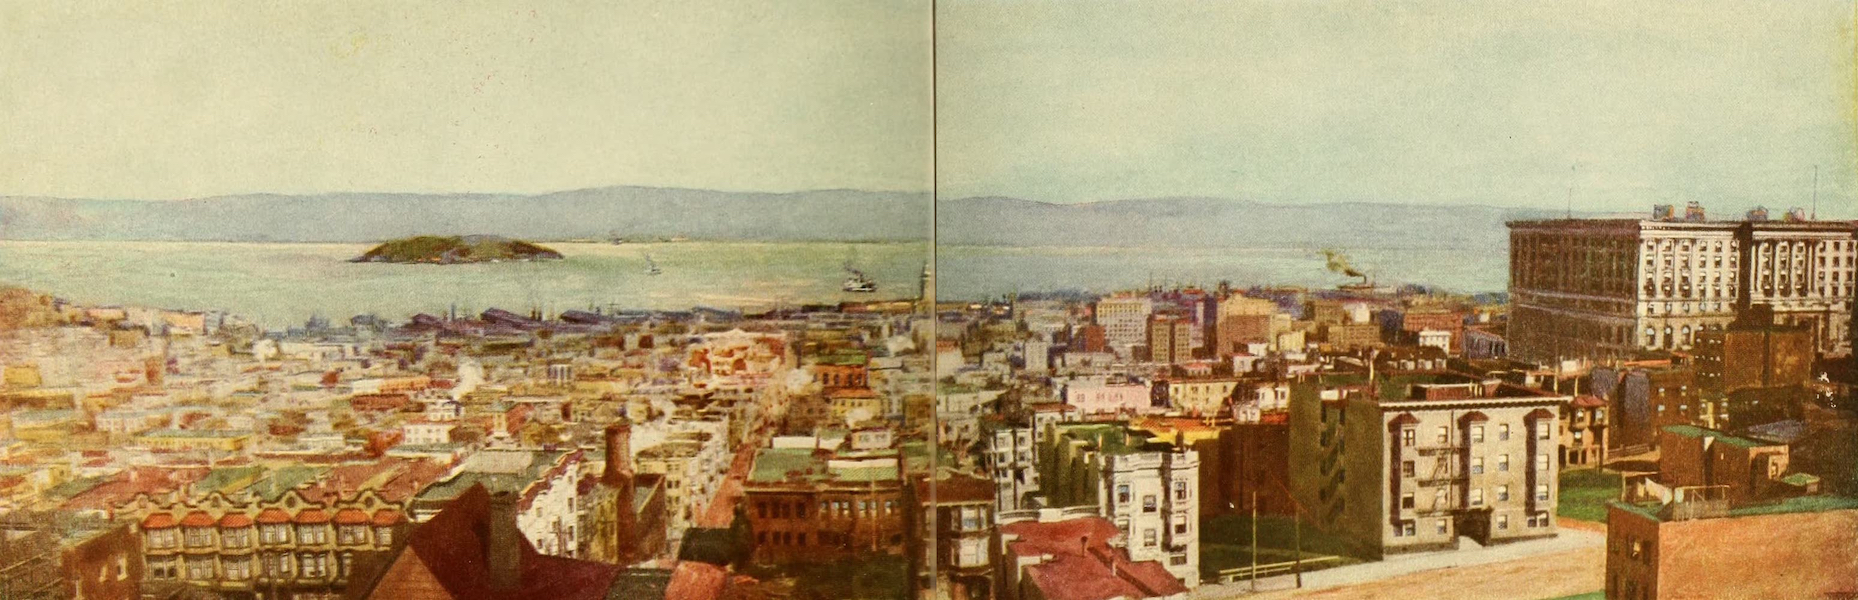 Panama-Pacific International Exposition - San Francisco from Nob Hill (1913)